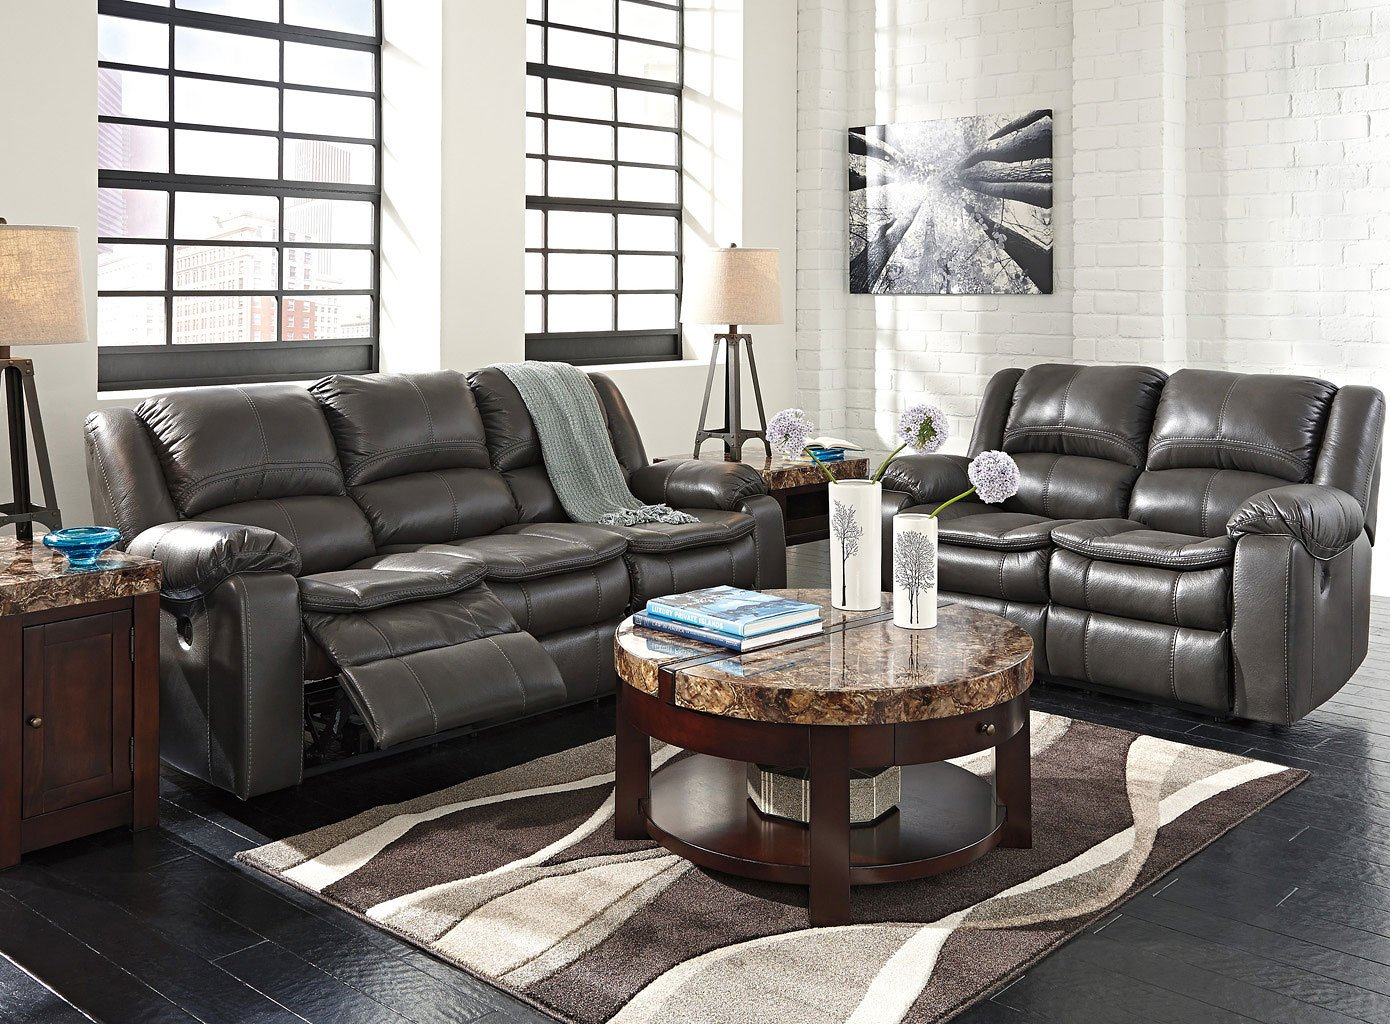 long knight gray reclining living room set w power living room sets living room furniture. Black Bedroom Furniture Sets. Home Design Ideas